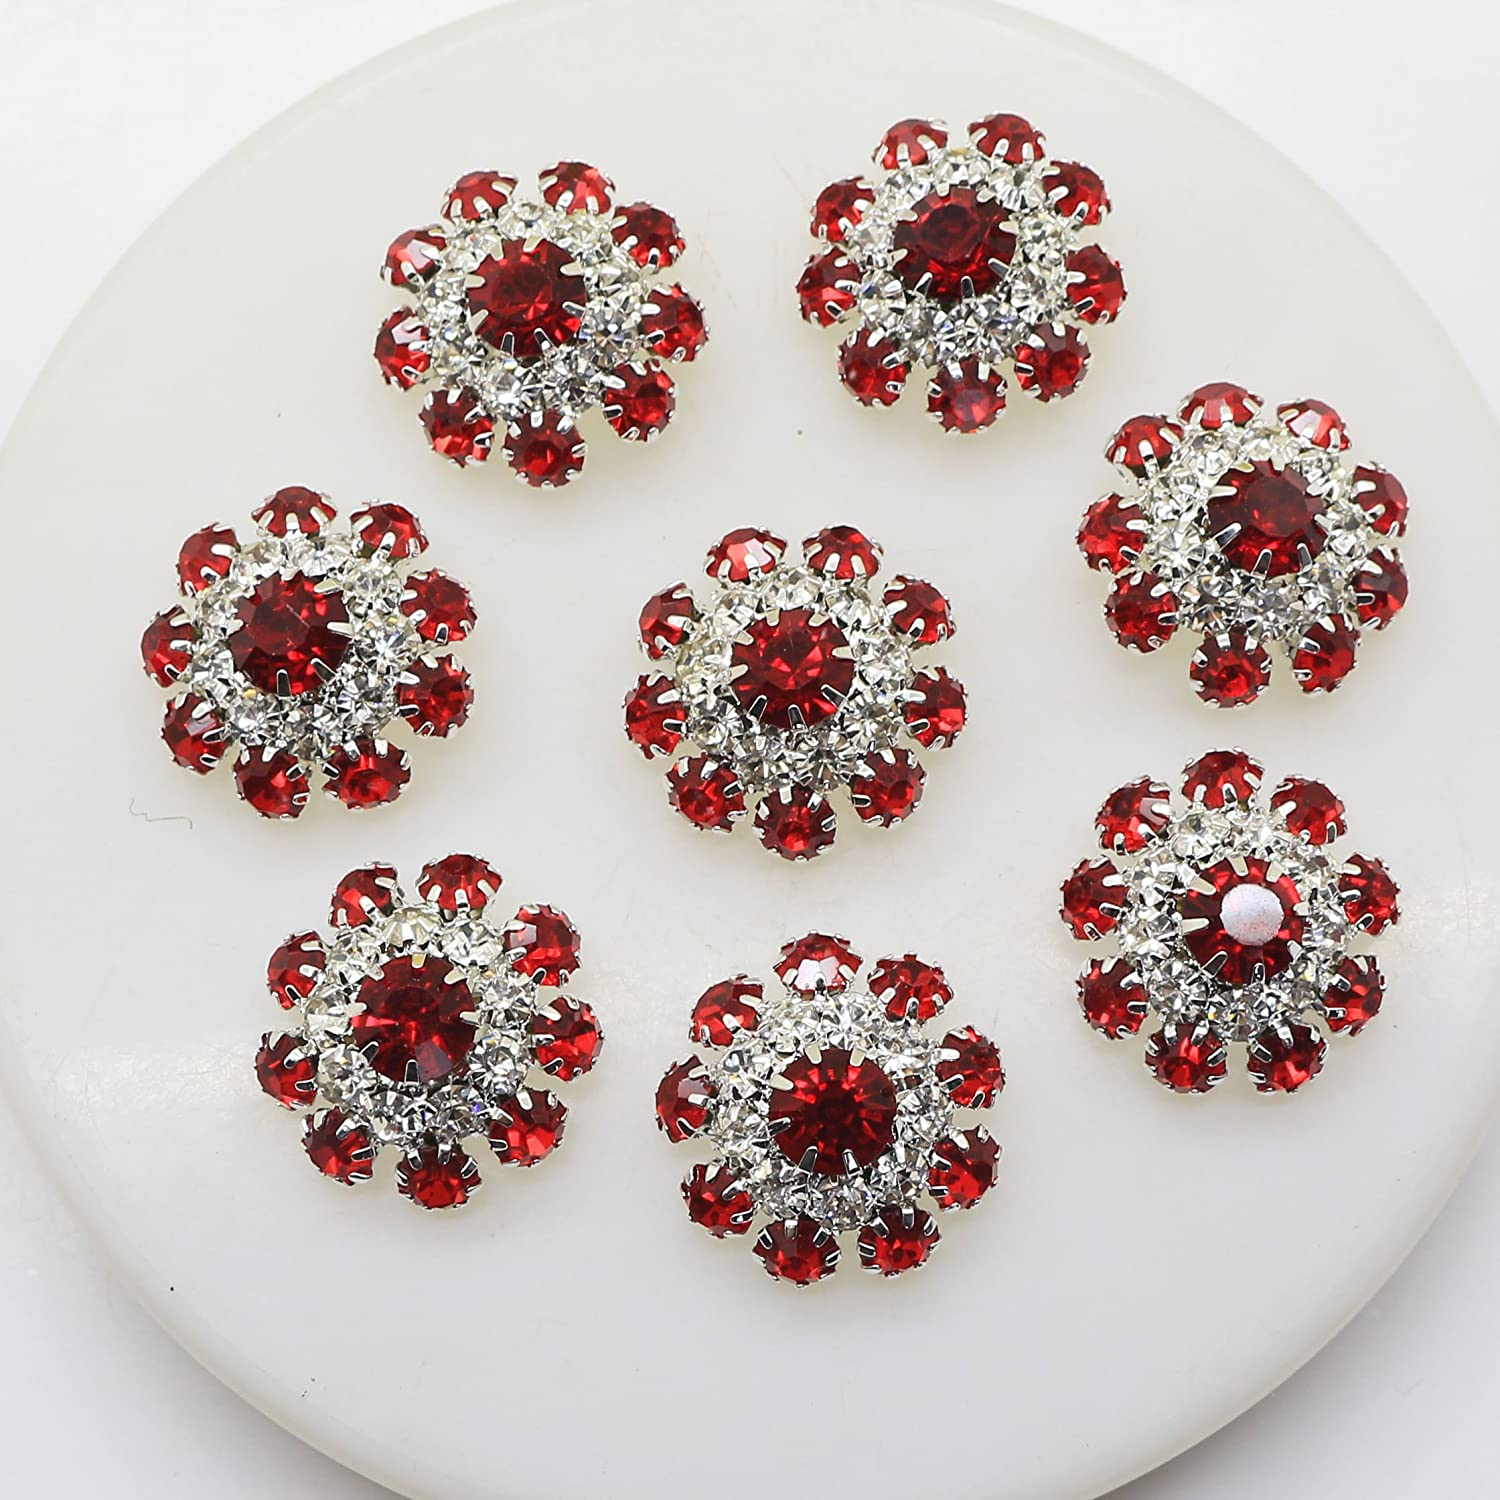 20pcs 20mm Red Round Rhinestones Diamond Buttons Decorative Beads DIY Craft  Embellishment for Headbands Hair Bows Wedding Bouquet Clothes Accessories  with ... 7b1d8406b8d2